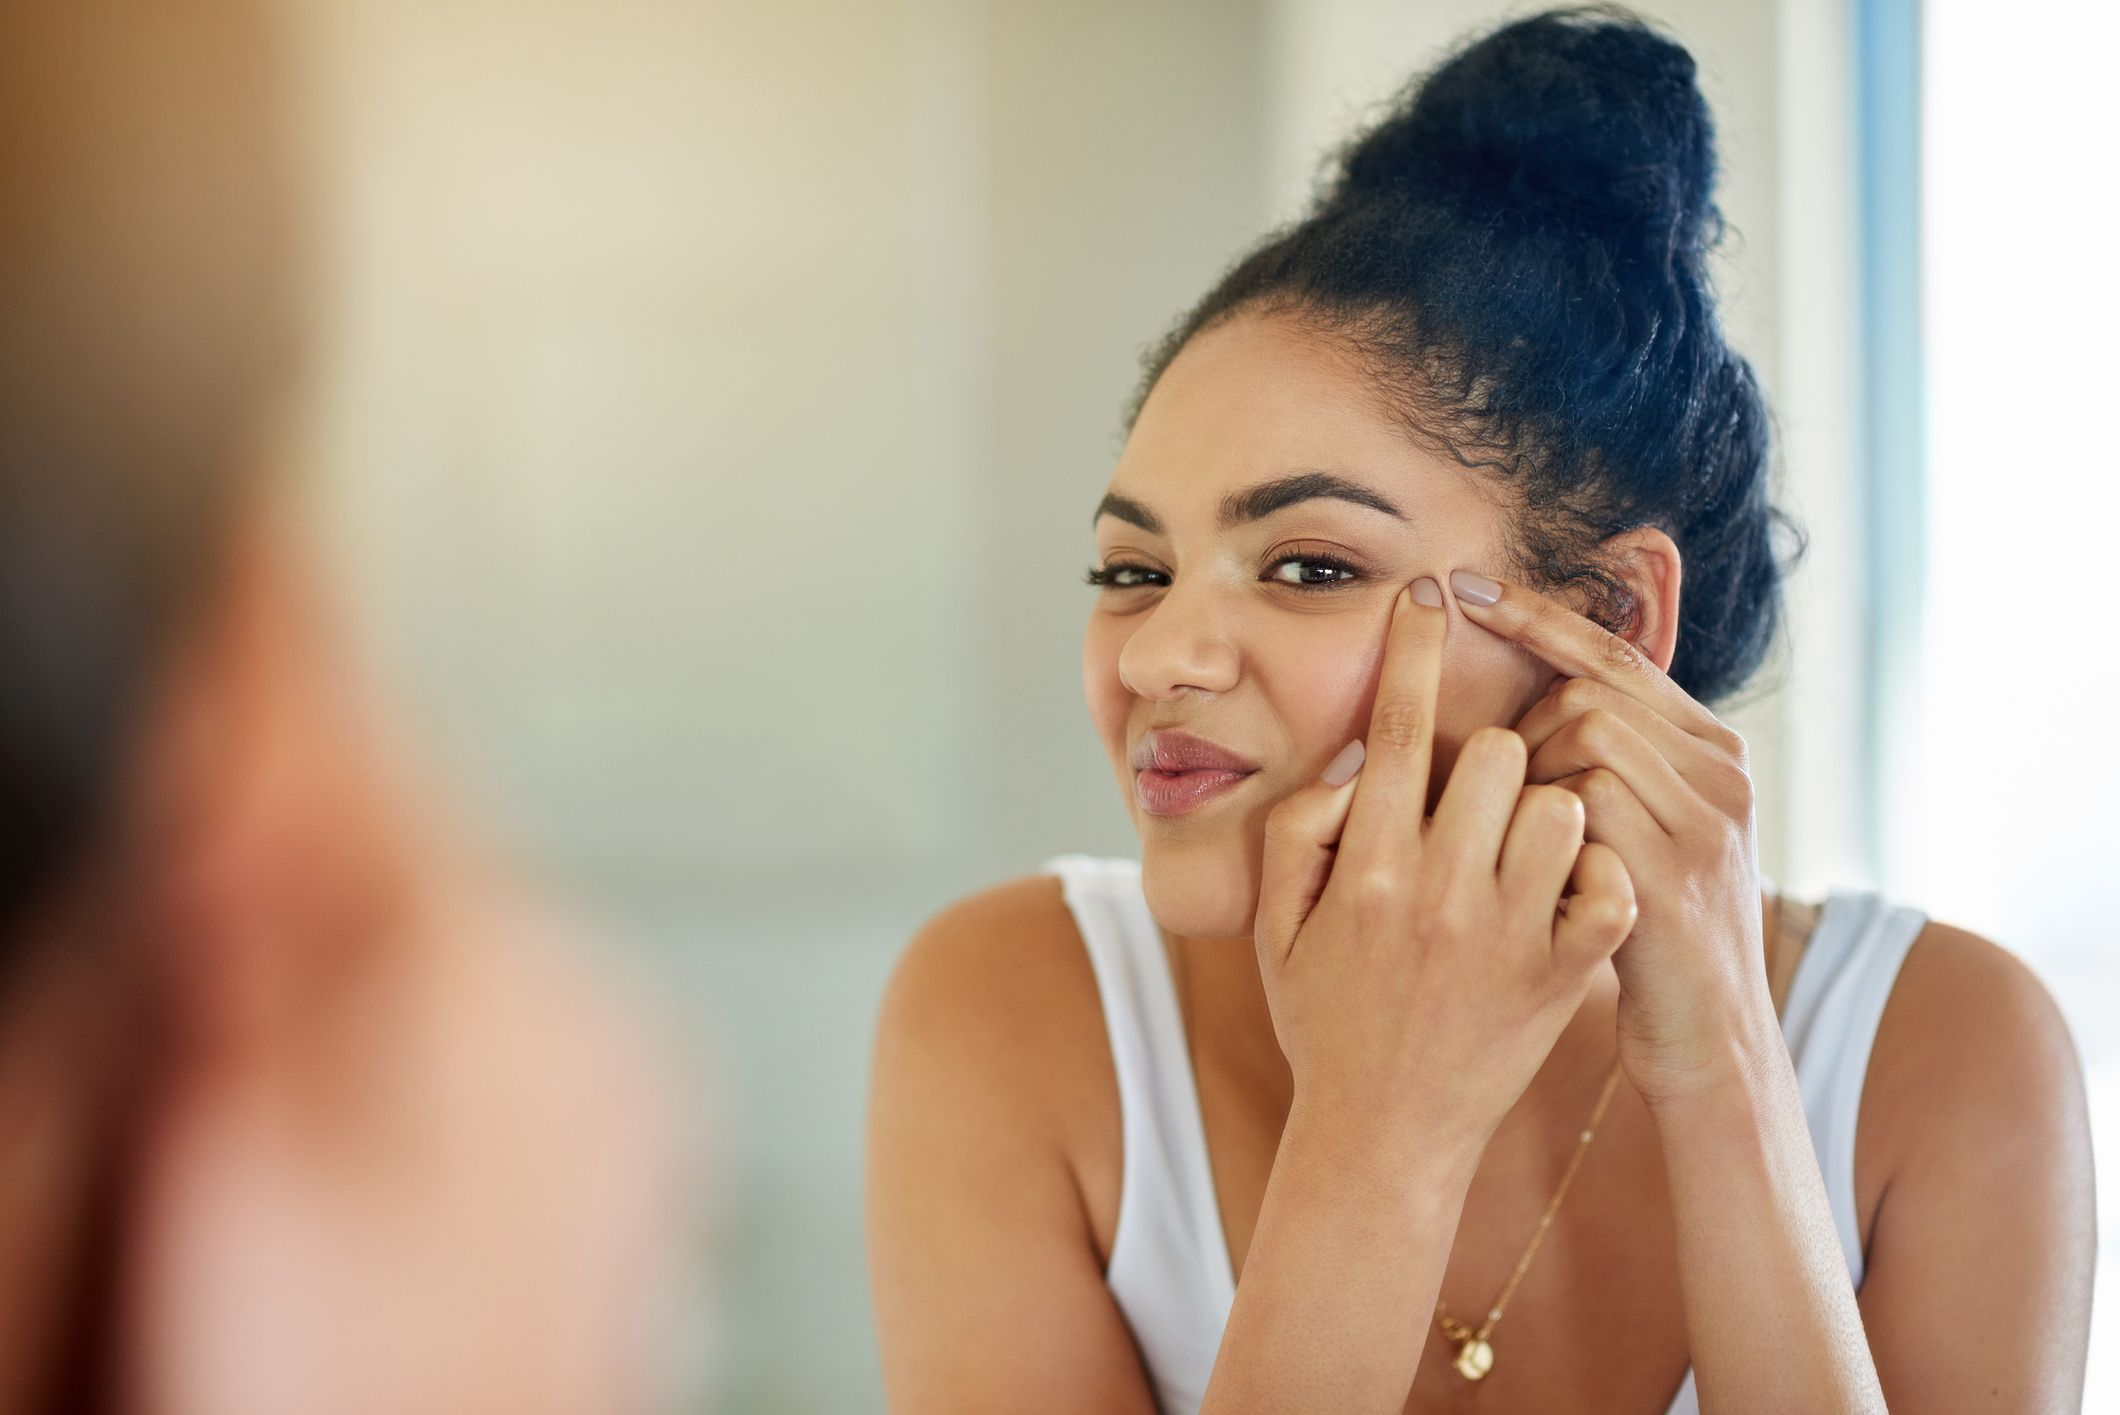 If You Get Annoying Pimples, You Should Def Learn About Probiotic Skincare